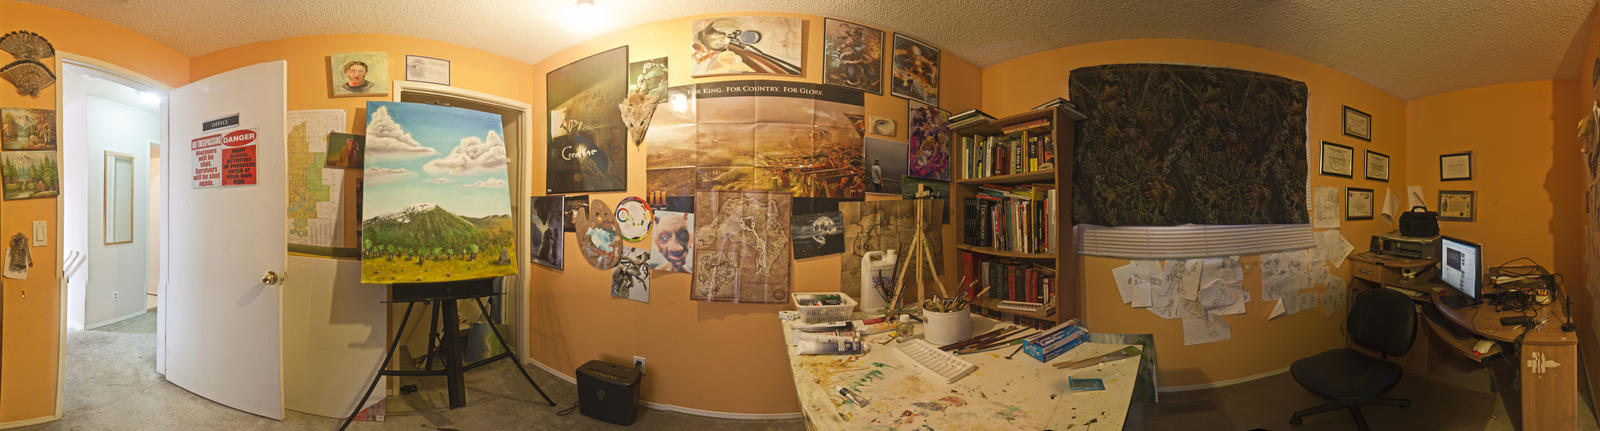 My Art Room. by Temporalvisions